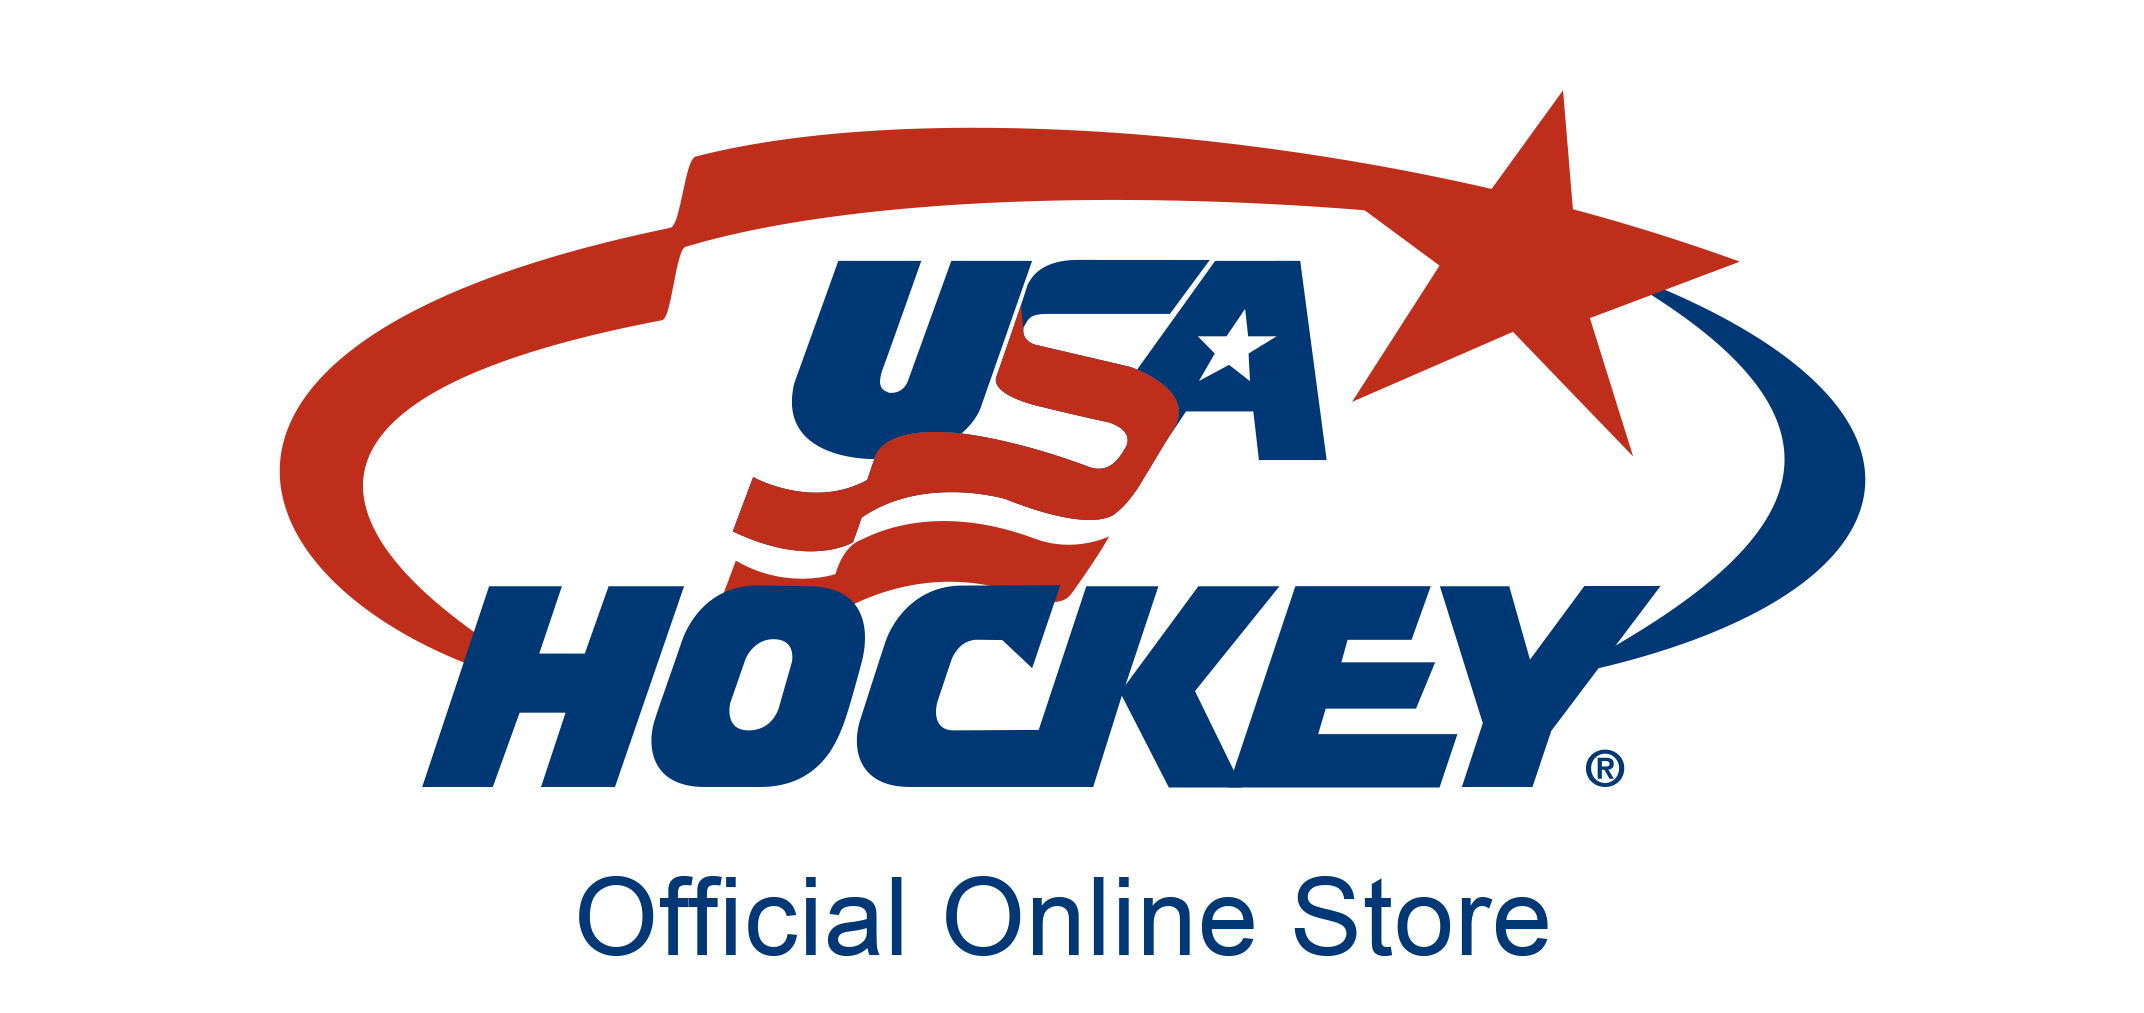 USA Hockey Shop